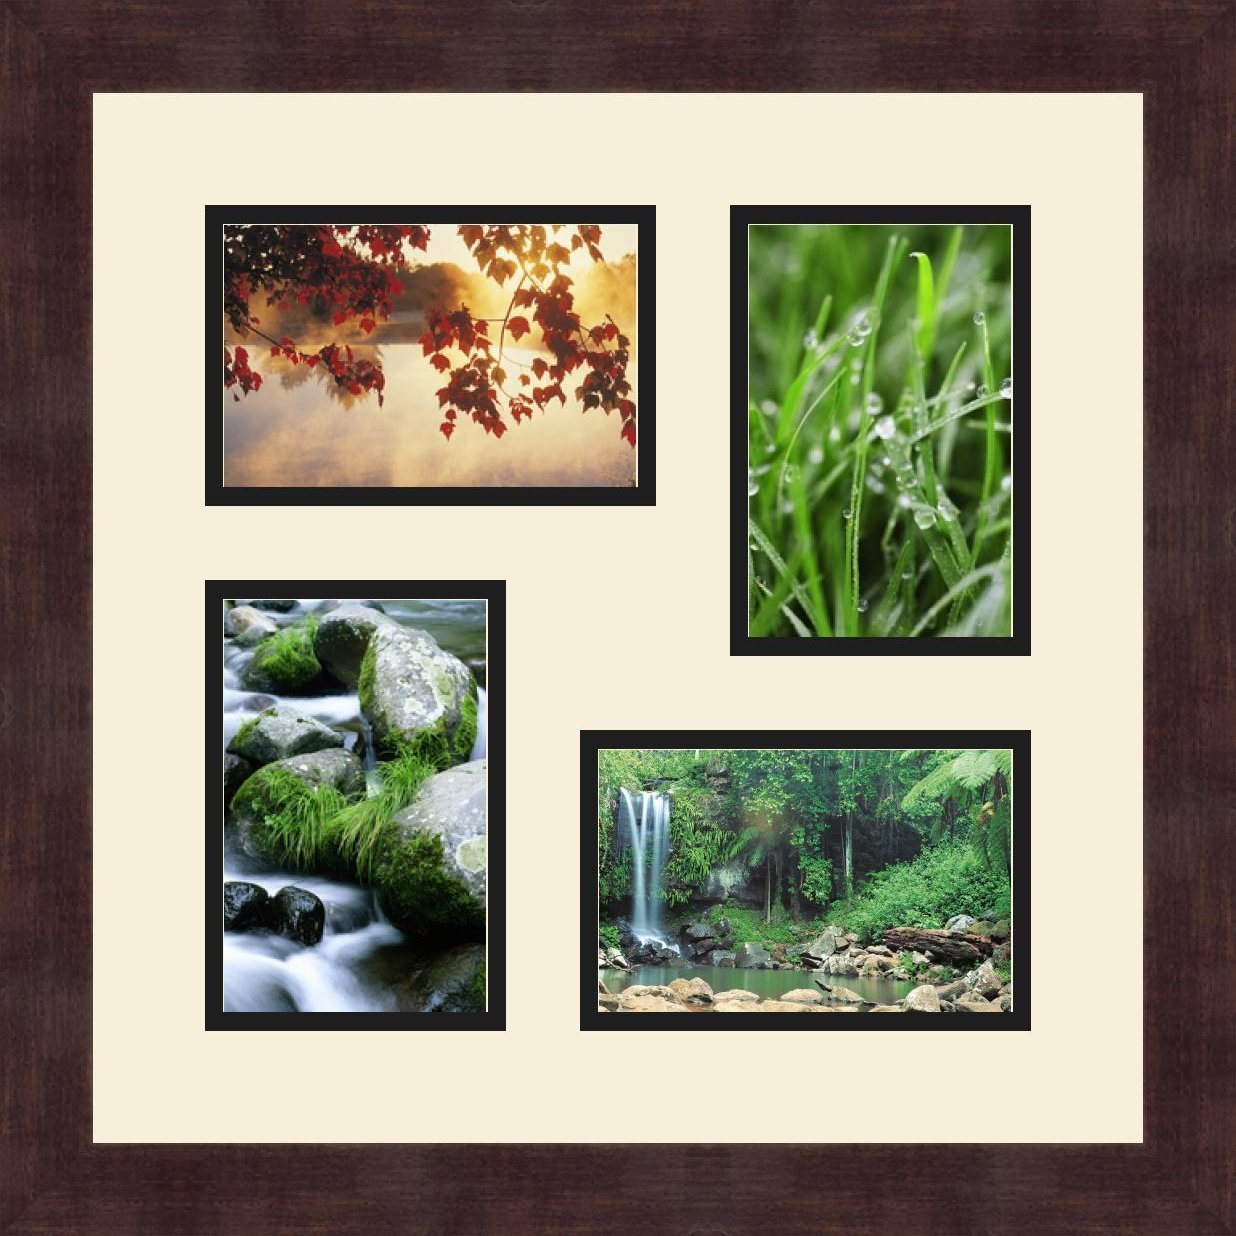 Art to Frames Double-Multimat-178-767//89-FRBW26061 Collage Frame Photo Mat Double Mat with 4-4x6 Openings and Espresso Frame